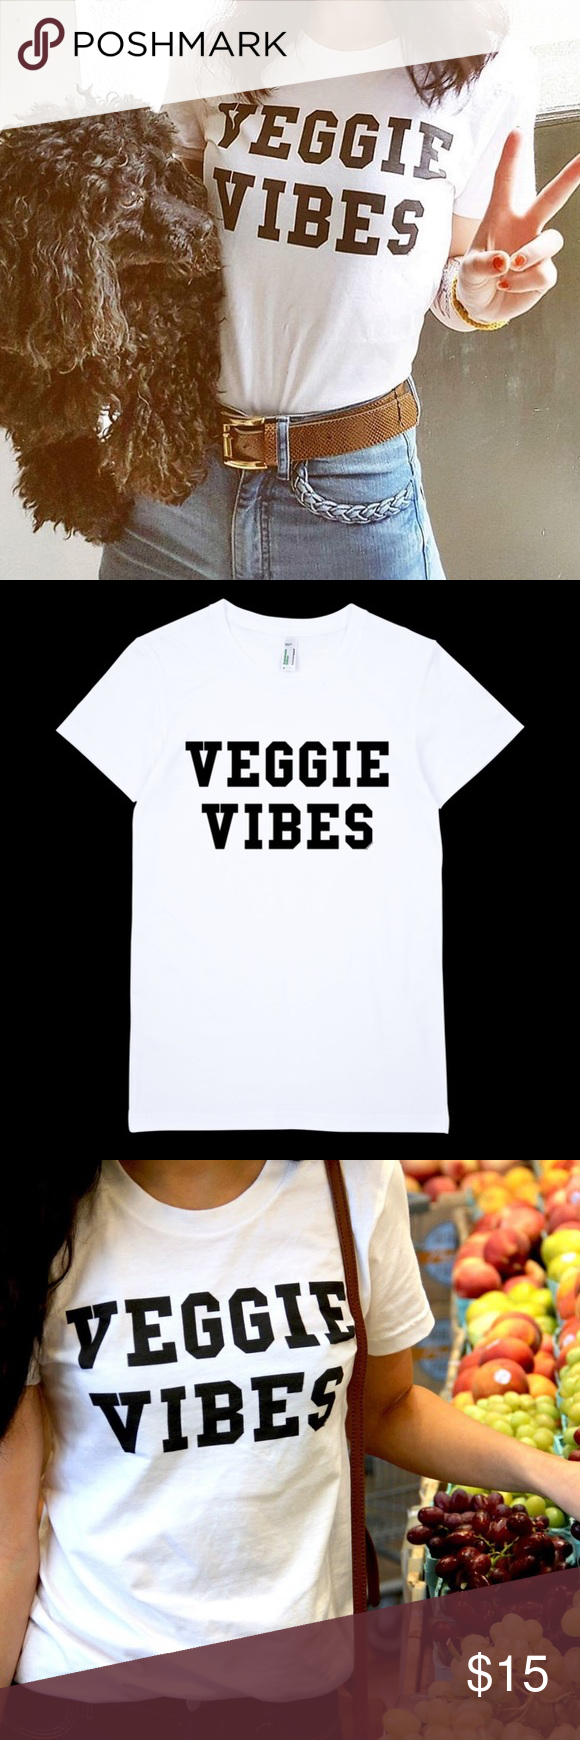 53454448e8 veggie vibes vegan statement tee shirt Wear Bare Bones Veggie Vibes Tee •••  Material- cotton Condition- Great Like New Condition Size S 100% Authentic  ...